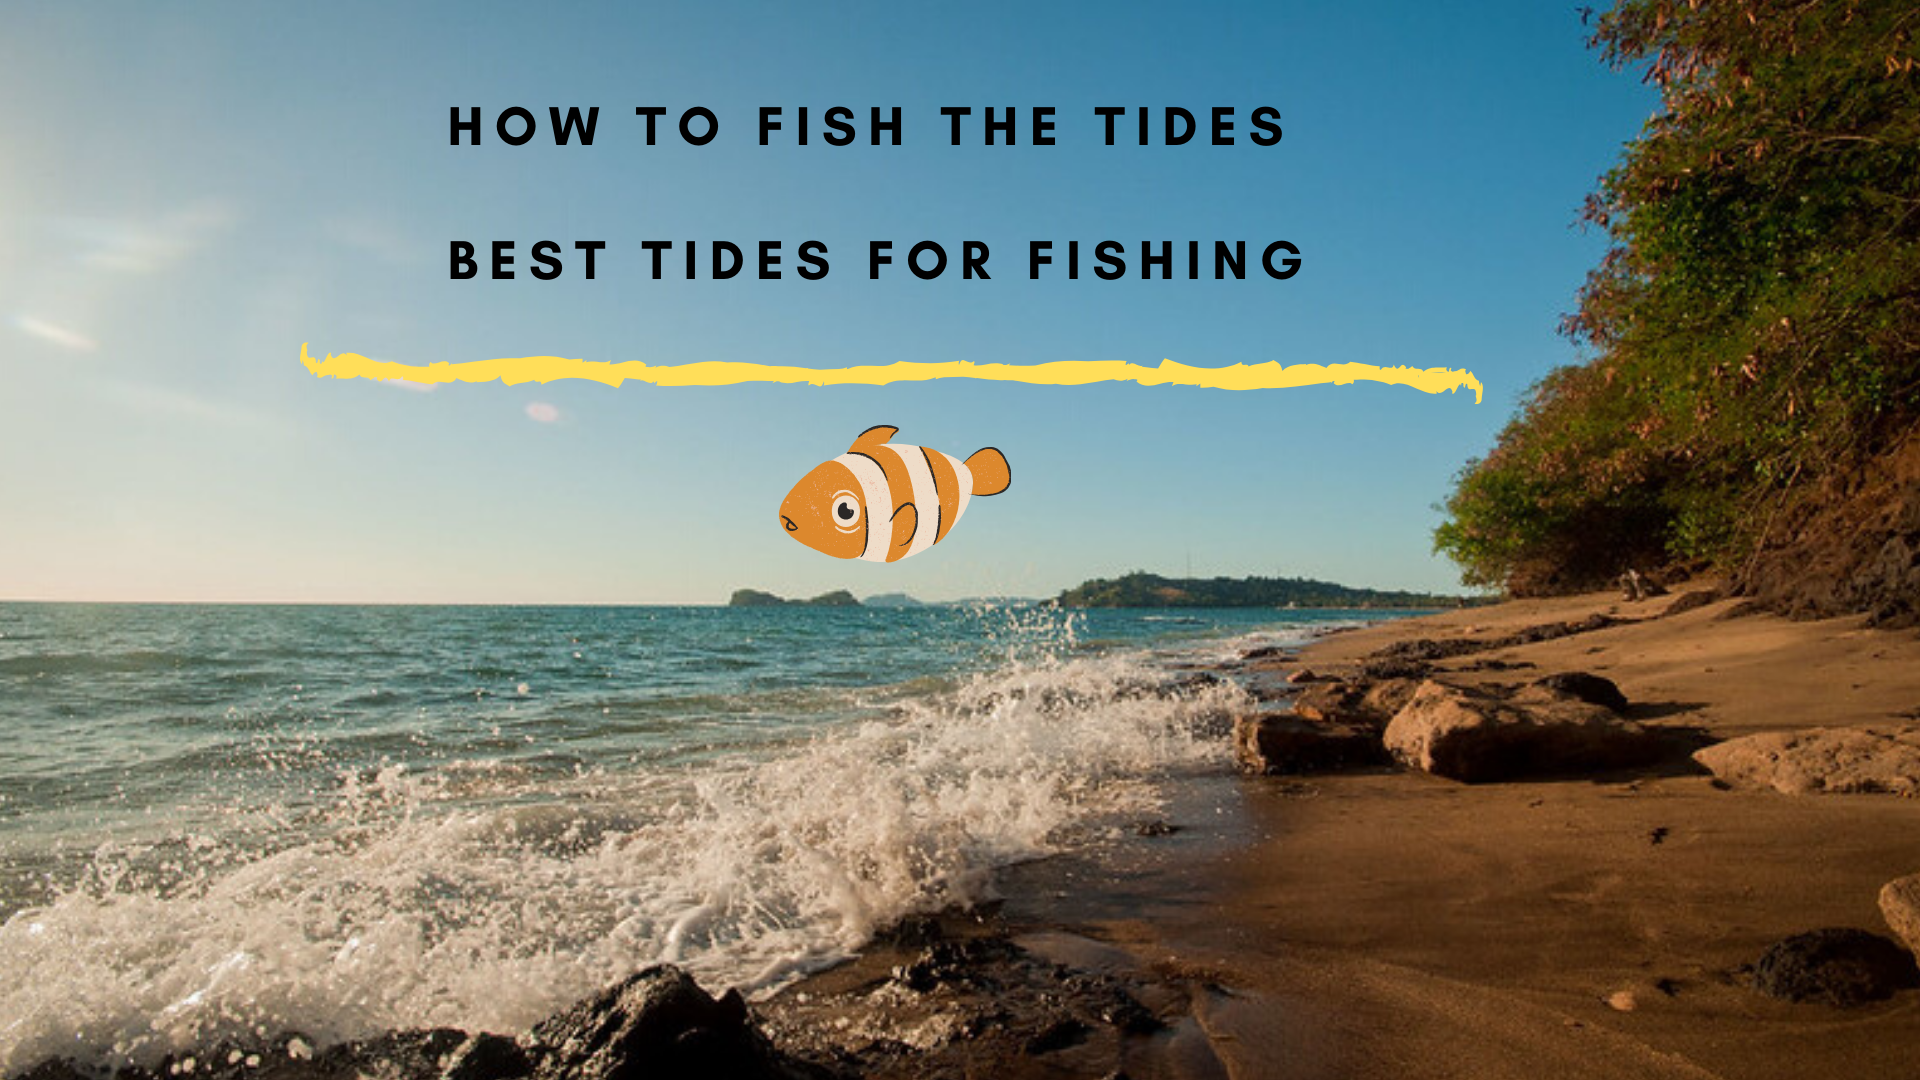 Best Tides For Fishing